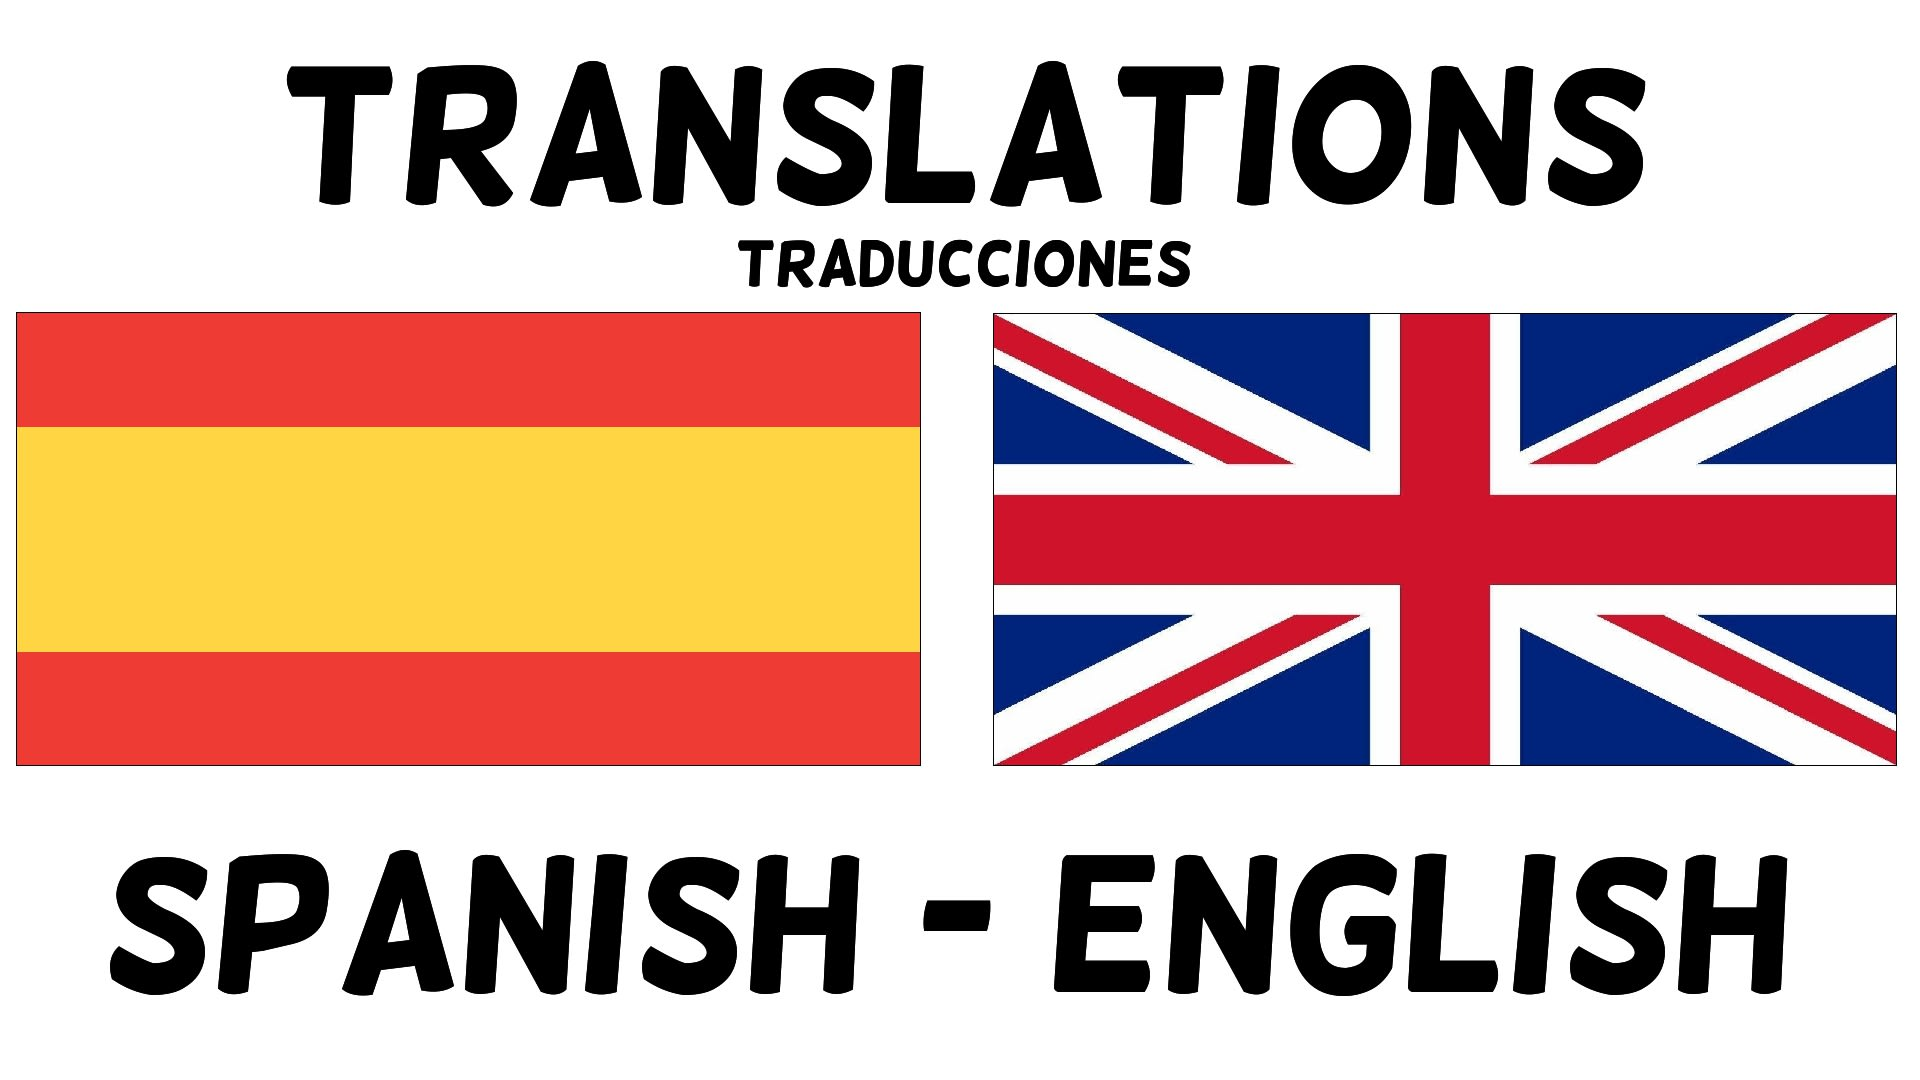 Translate english to spanish and vice versa by Mr_javi